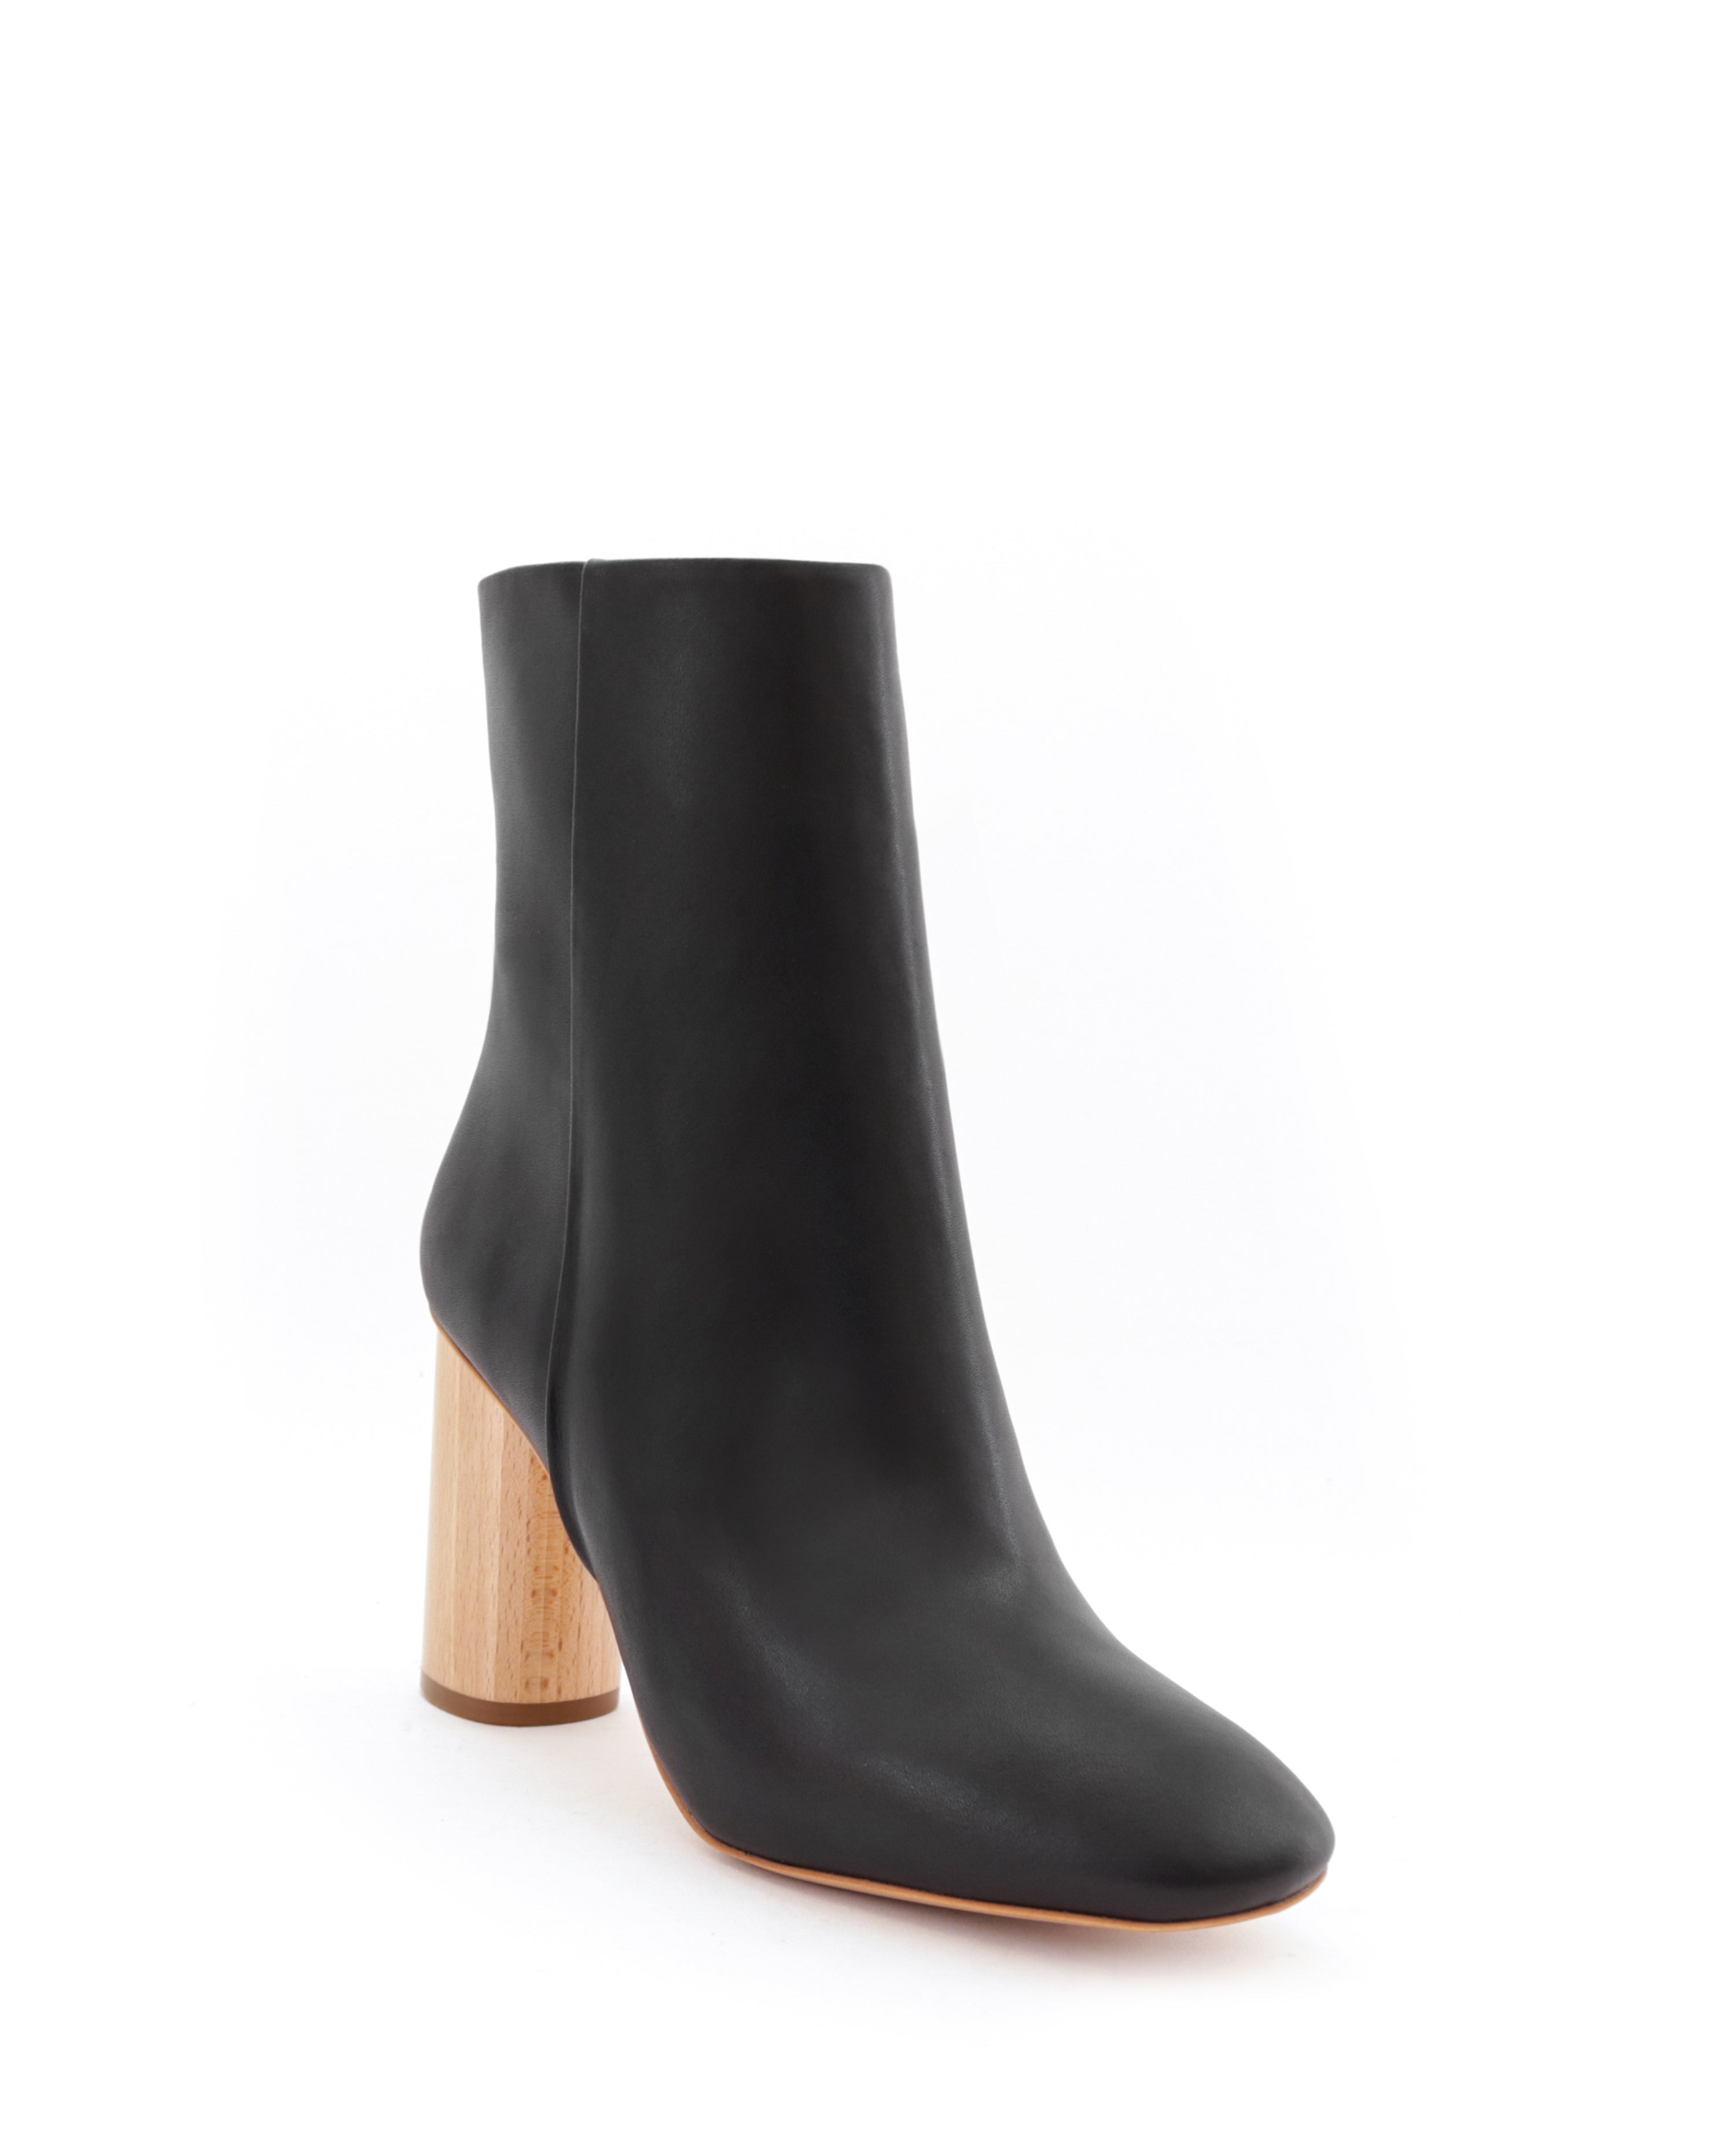 High ankle boot in eco-friendly black faux-nappa, natural sustainable wood. Luxury vegan footwear by Sydney Brown. Cruelty-free, non-leather, sustainable & ethical shoes